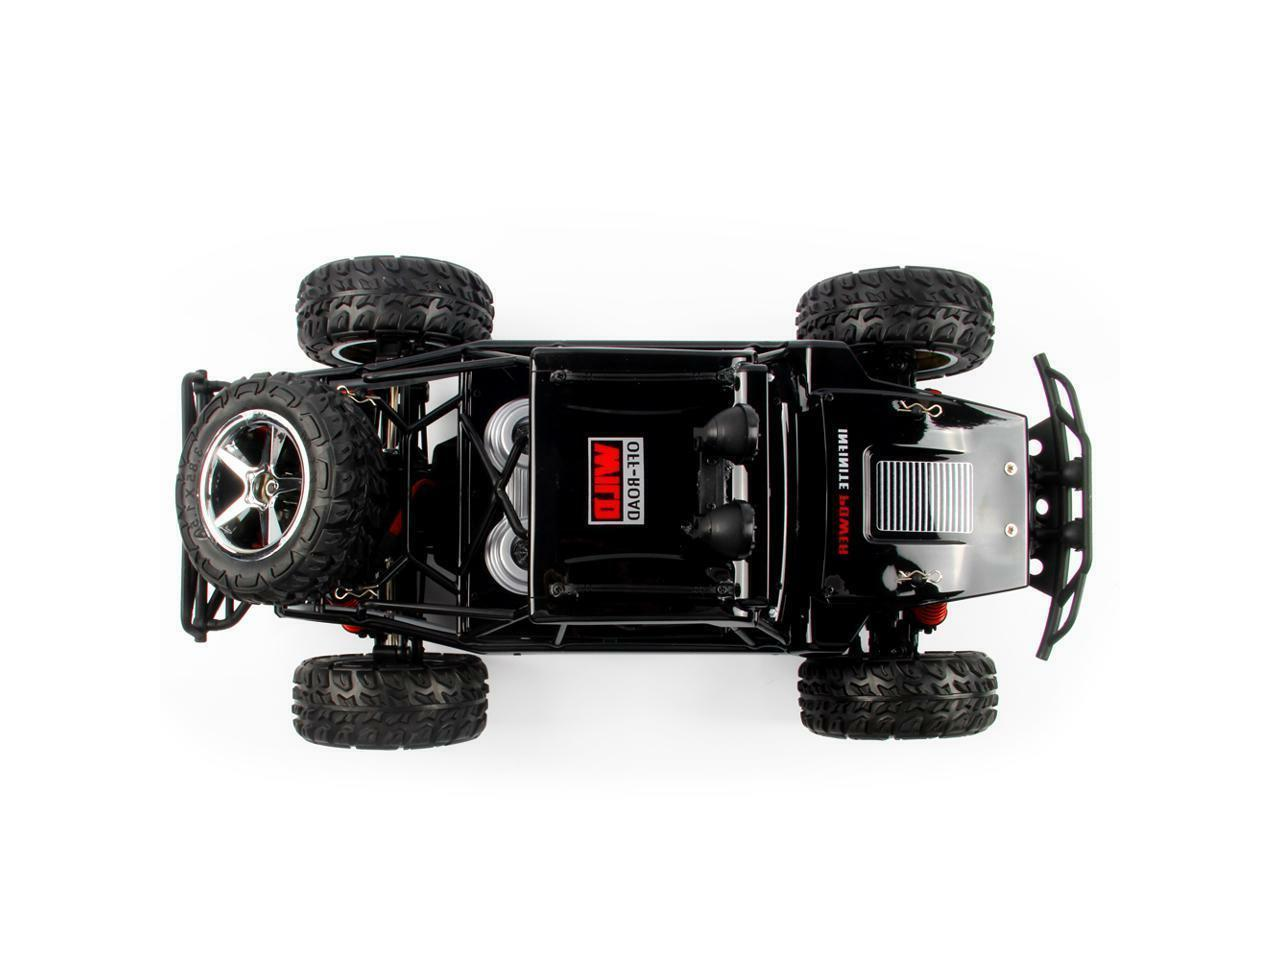 Scale Off-road Vehicle -